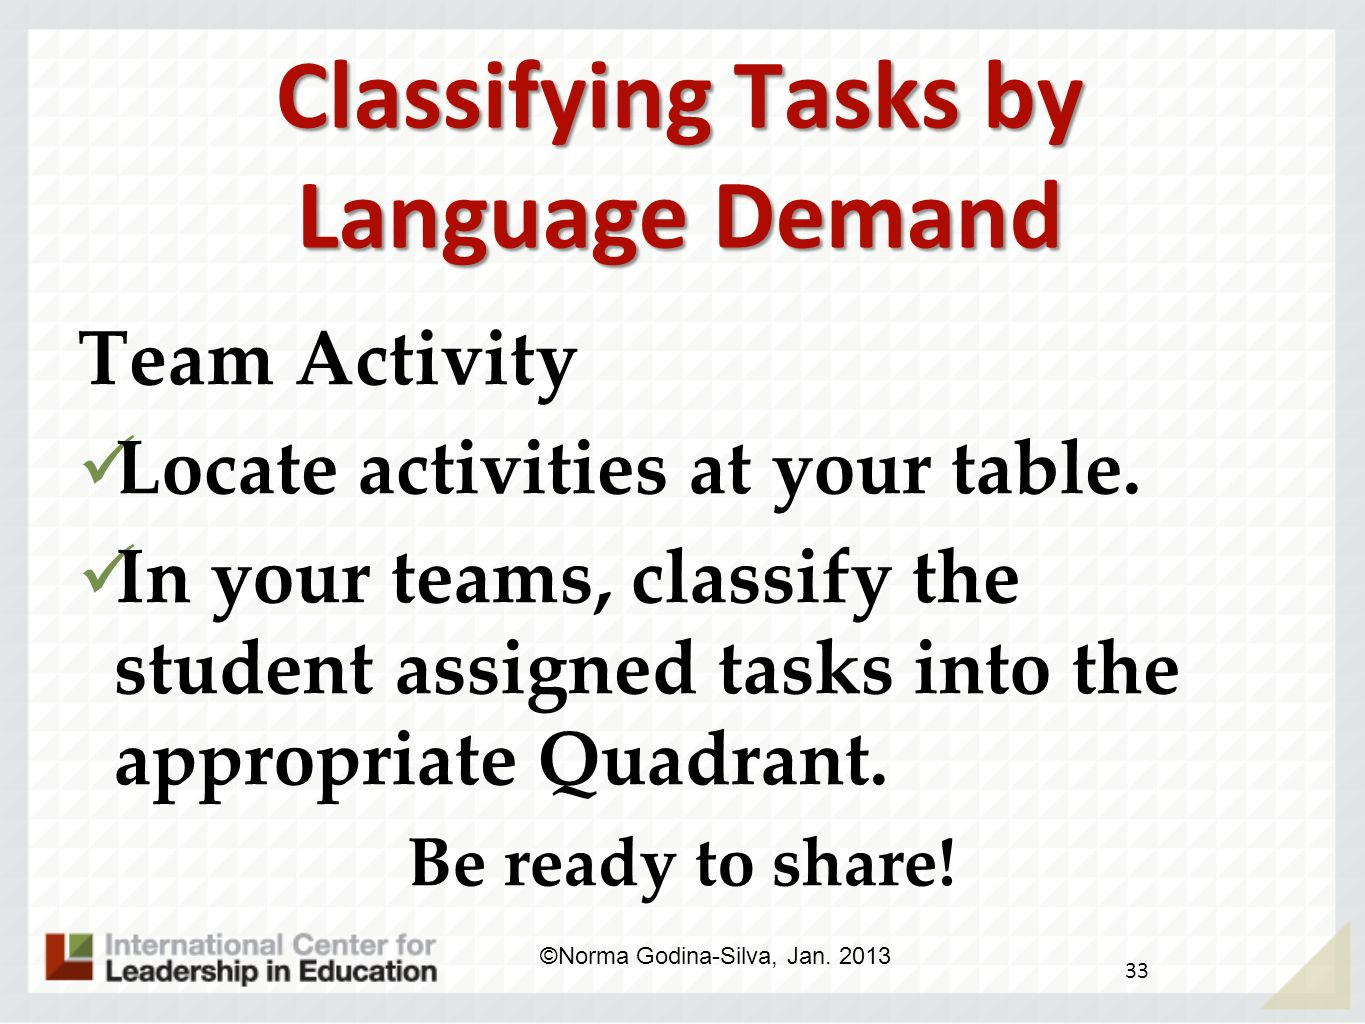 Classifying Tasks by Language Demand